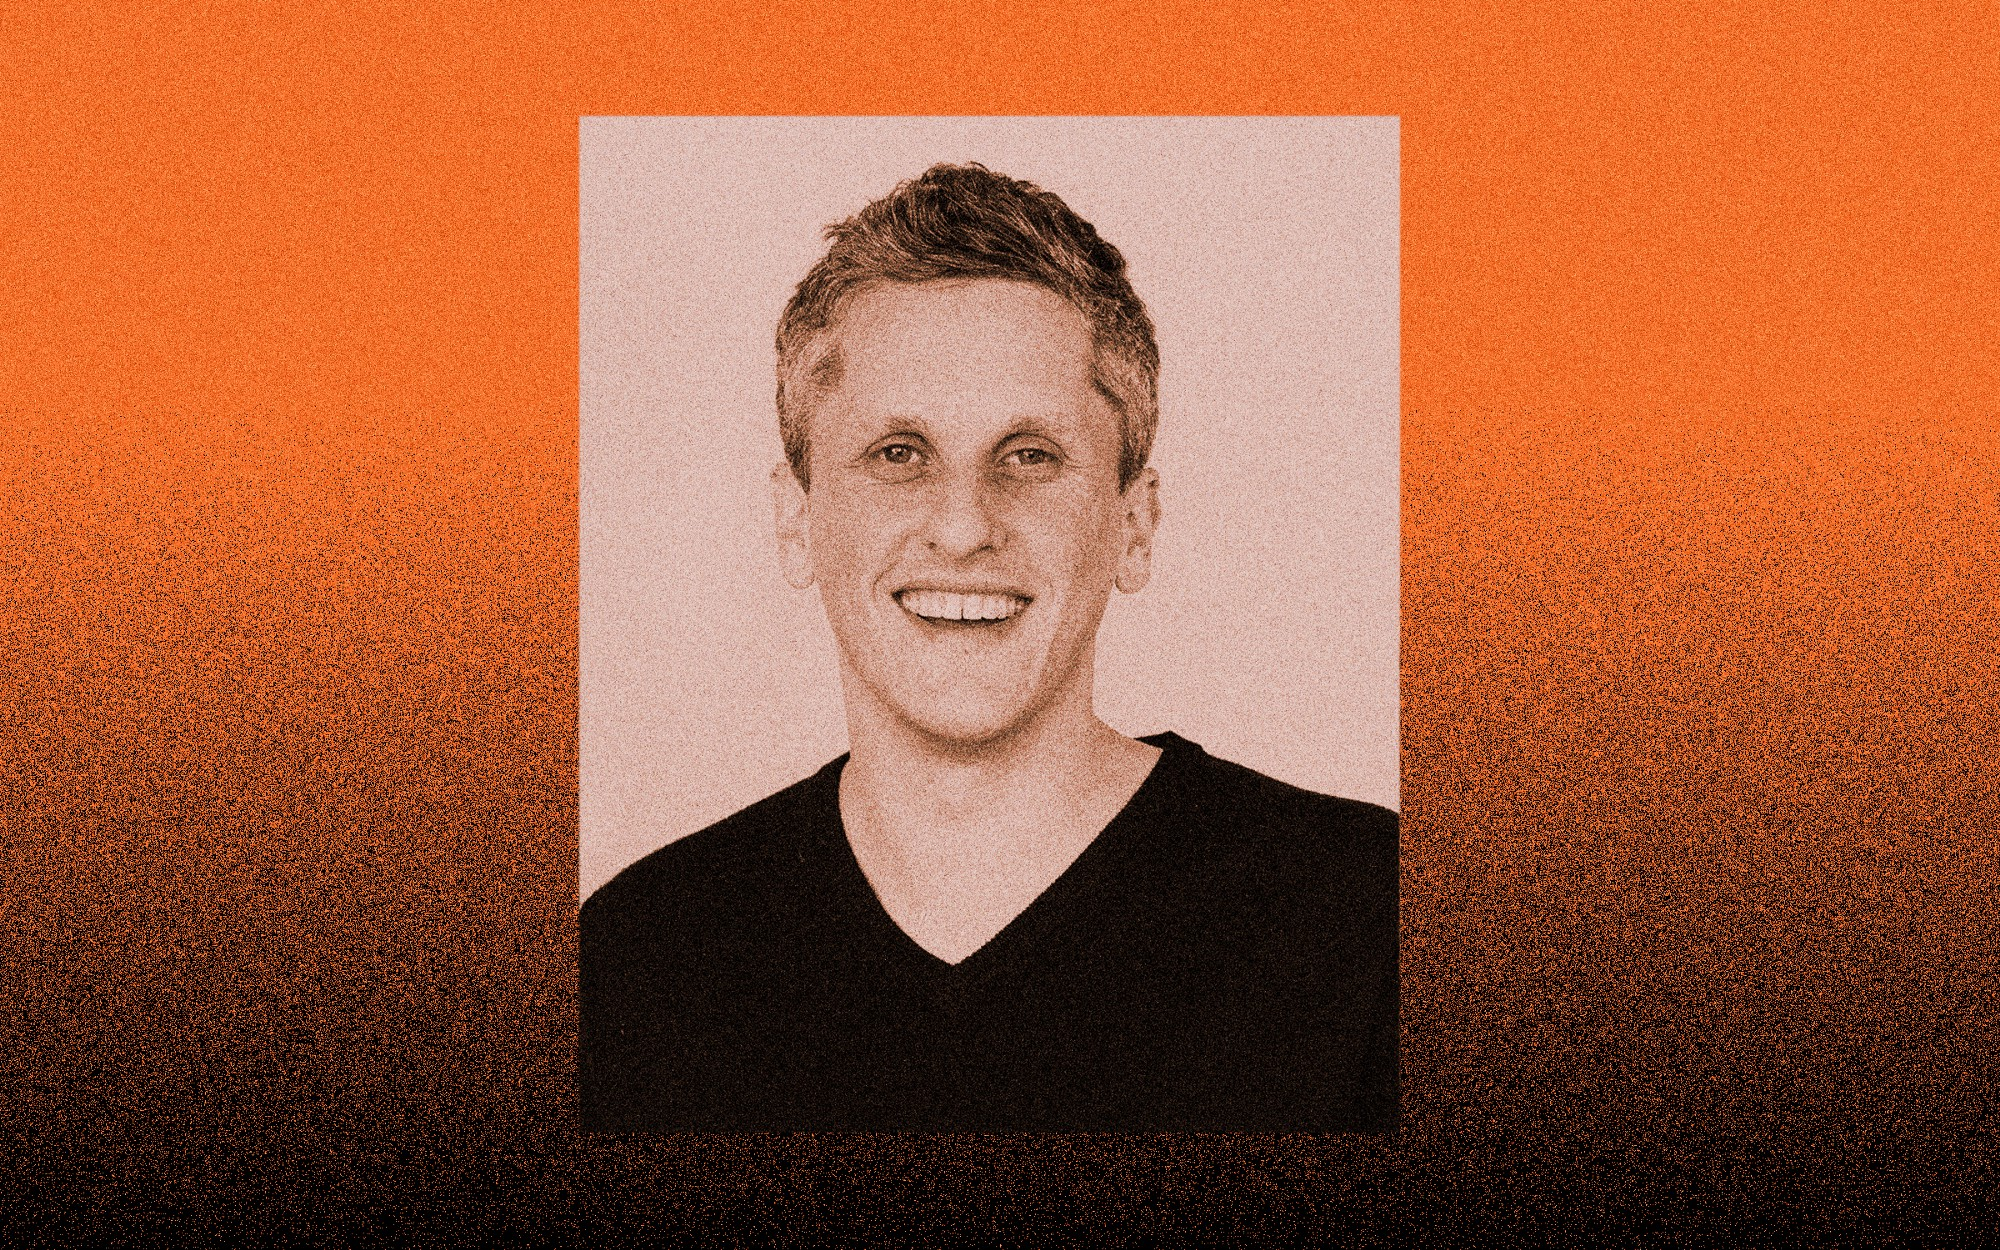 A photo of Aaron Levie against an orange gradient to black background.